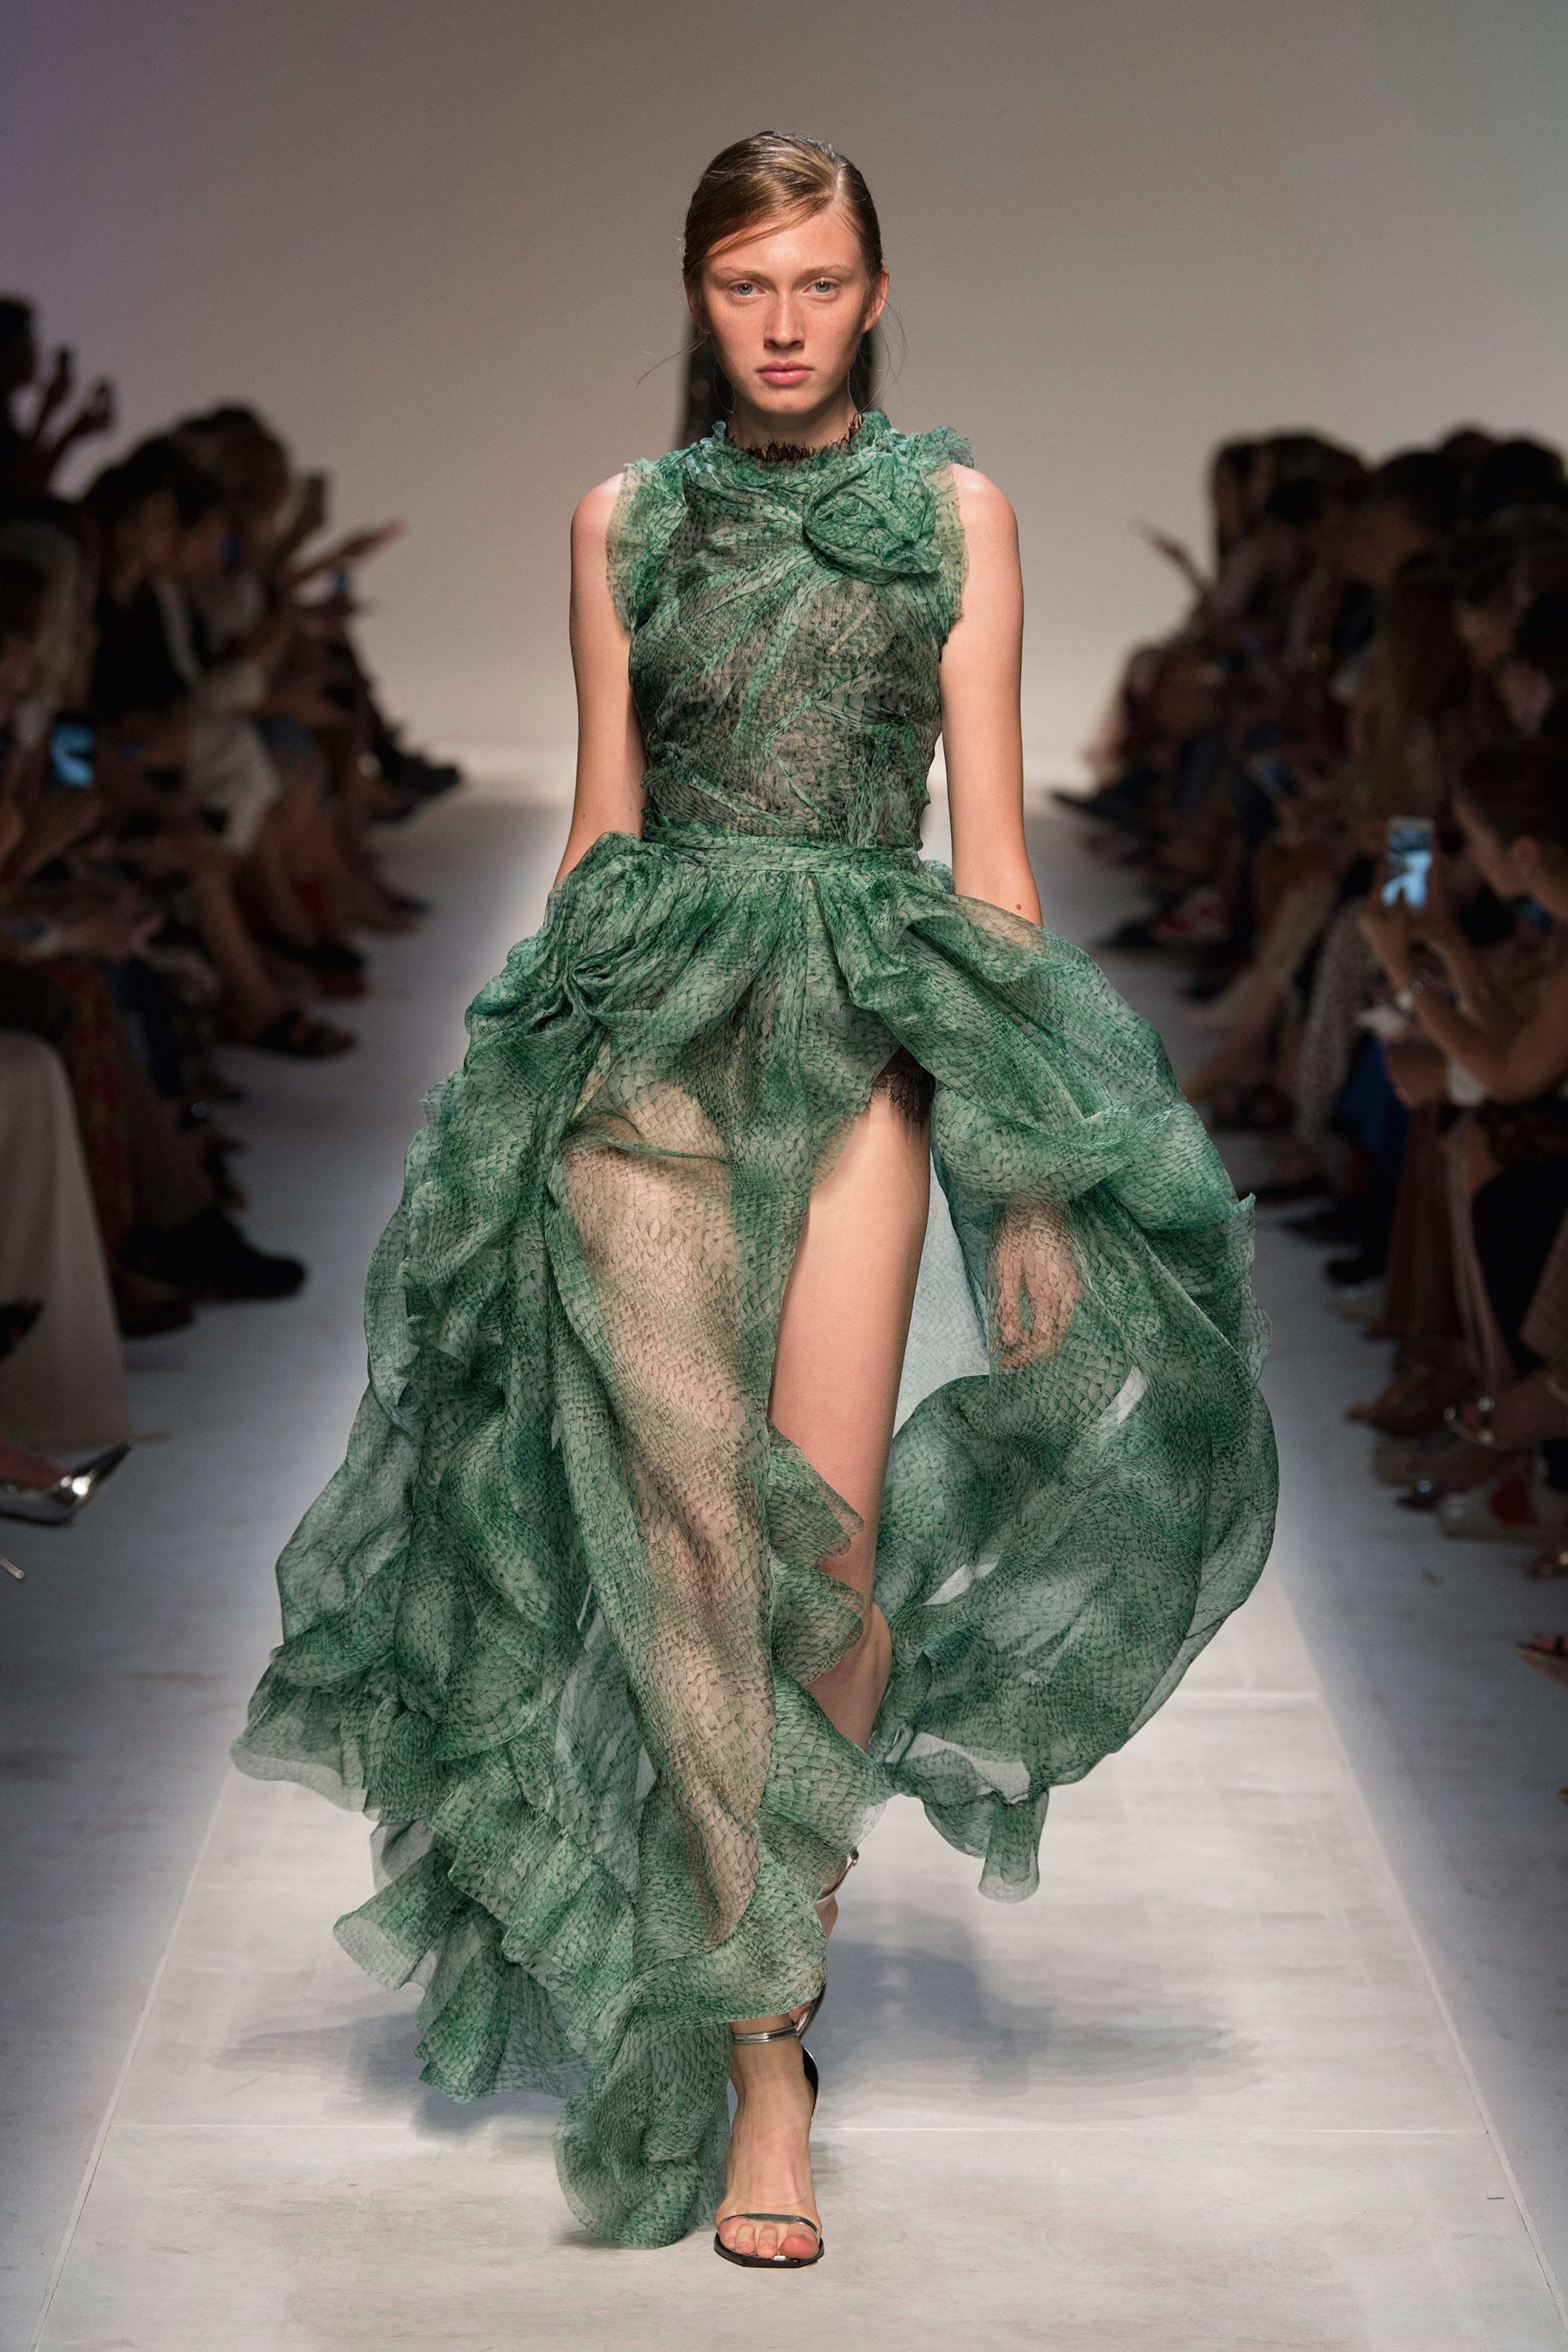 Green transparent gown from Ermanno Scervino's Spring 2019 Runway collection